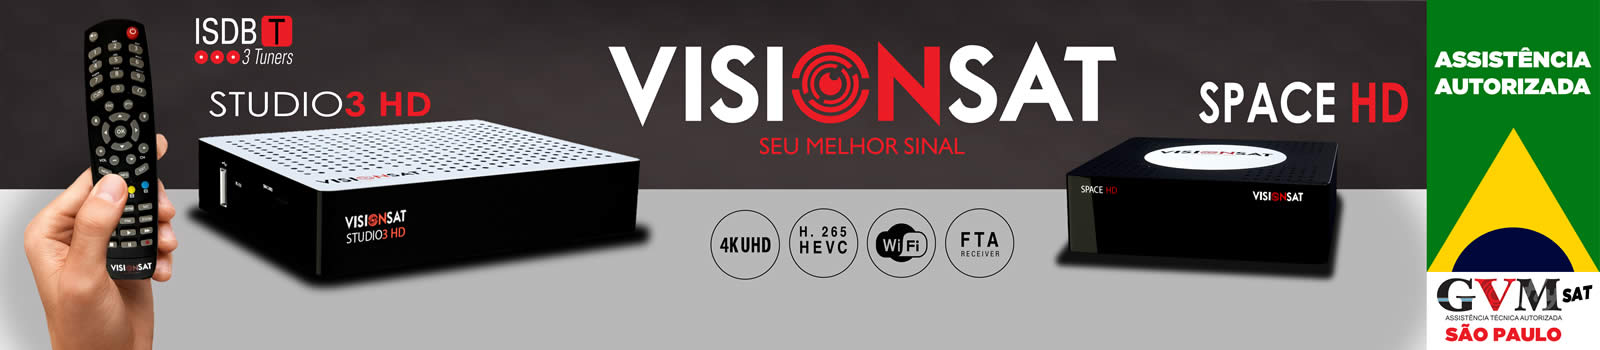 Visionsat